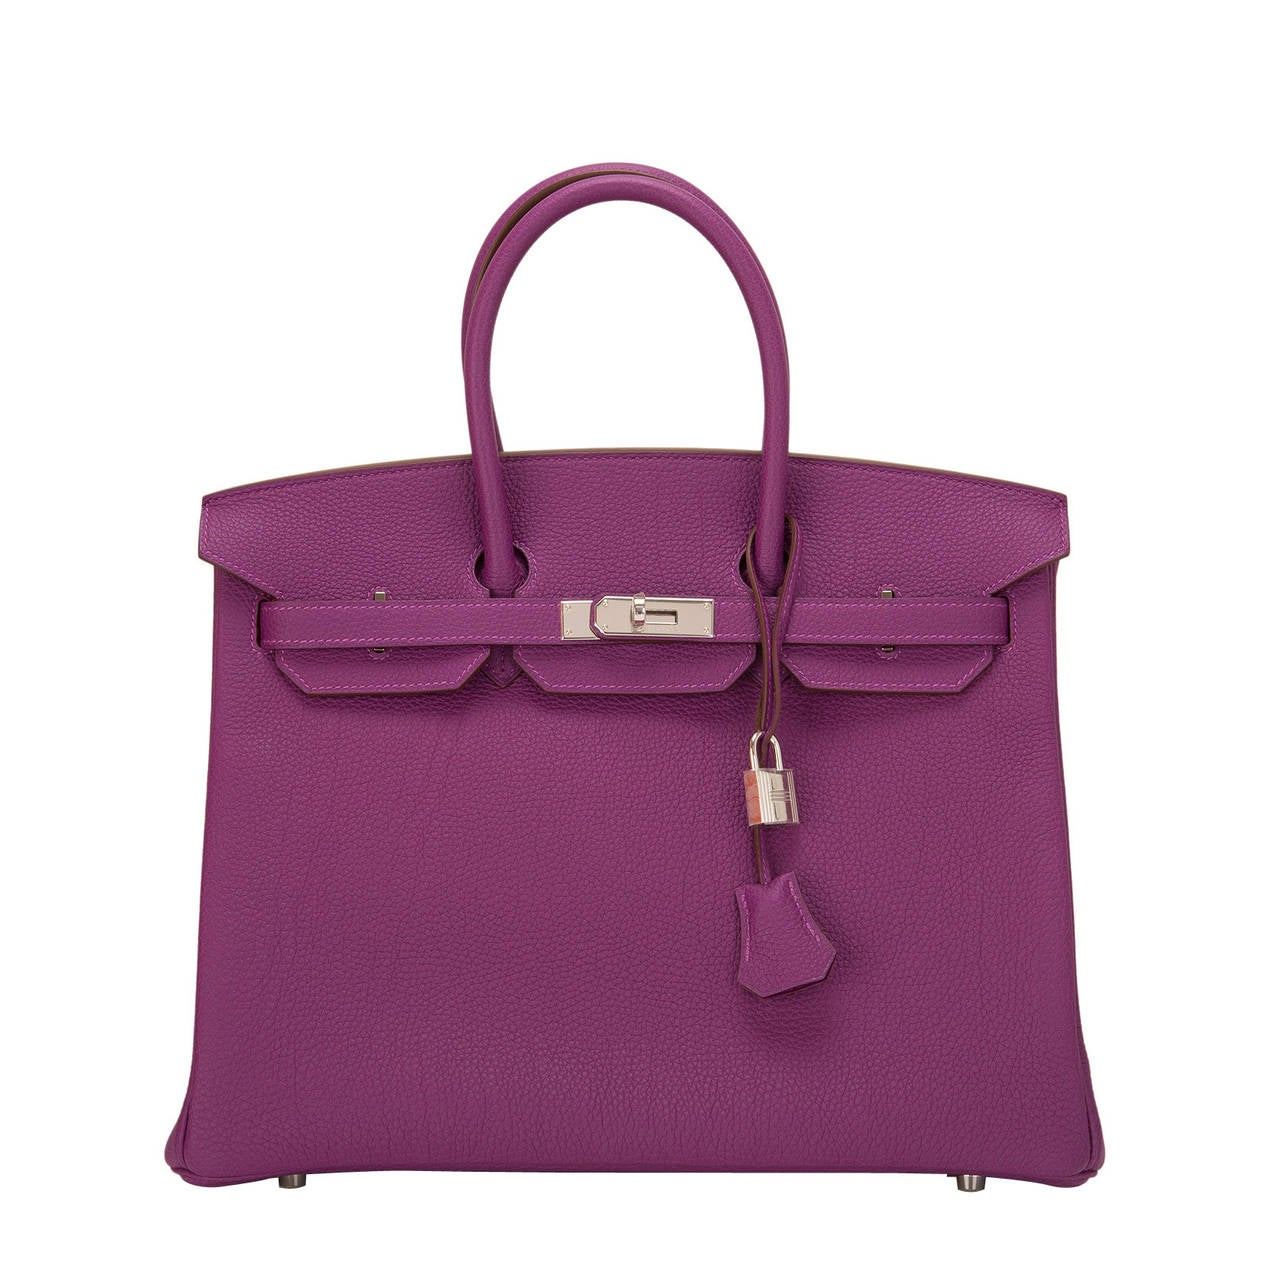 Hermes Anemone Togo Birkin 35cm Palladium Hardware For Sale